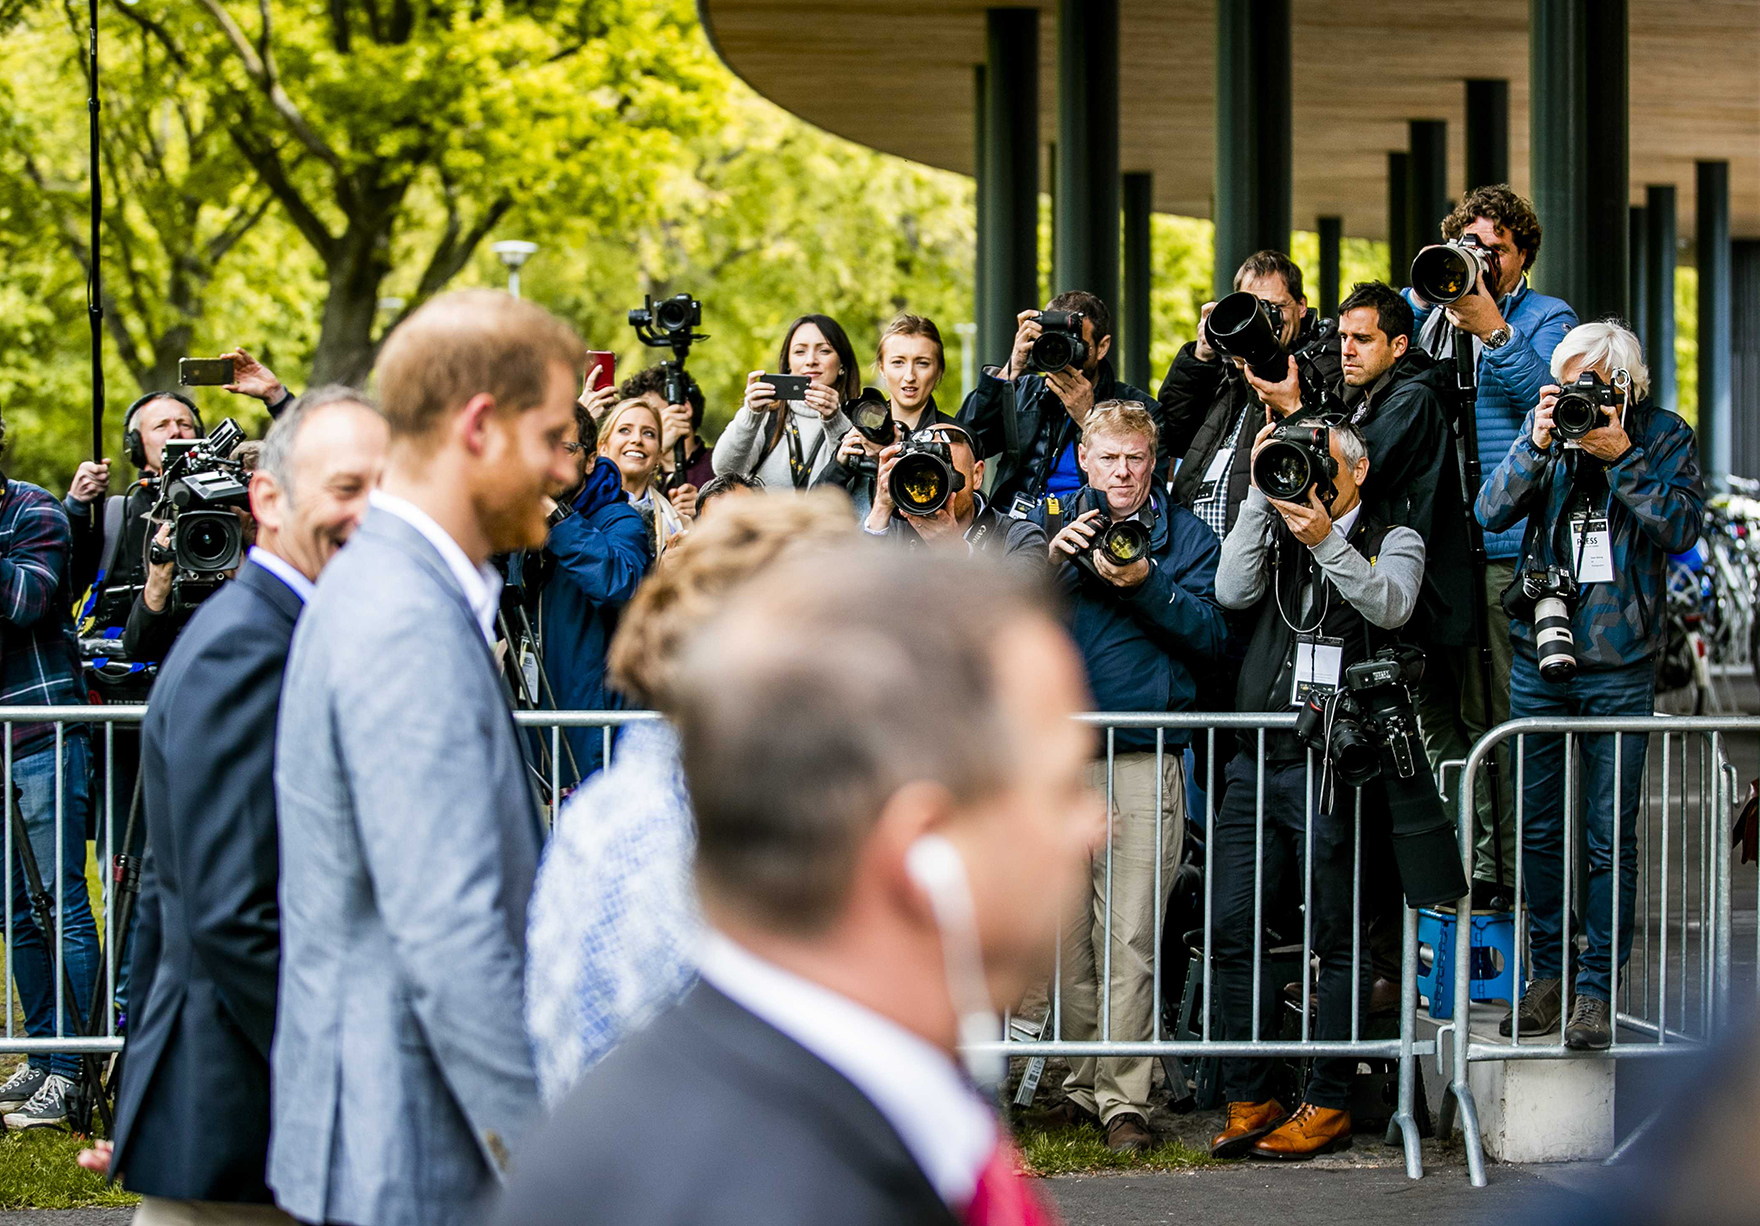 Prince Harry Visits Sportcampus Zuiderpark The Hague Den Haag Invictus Games Entrance Lh